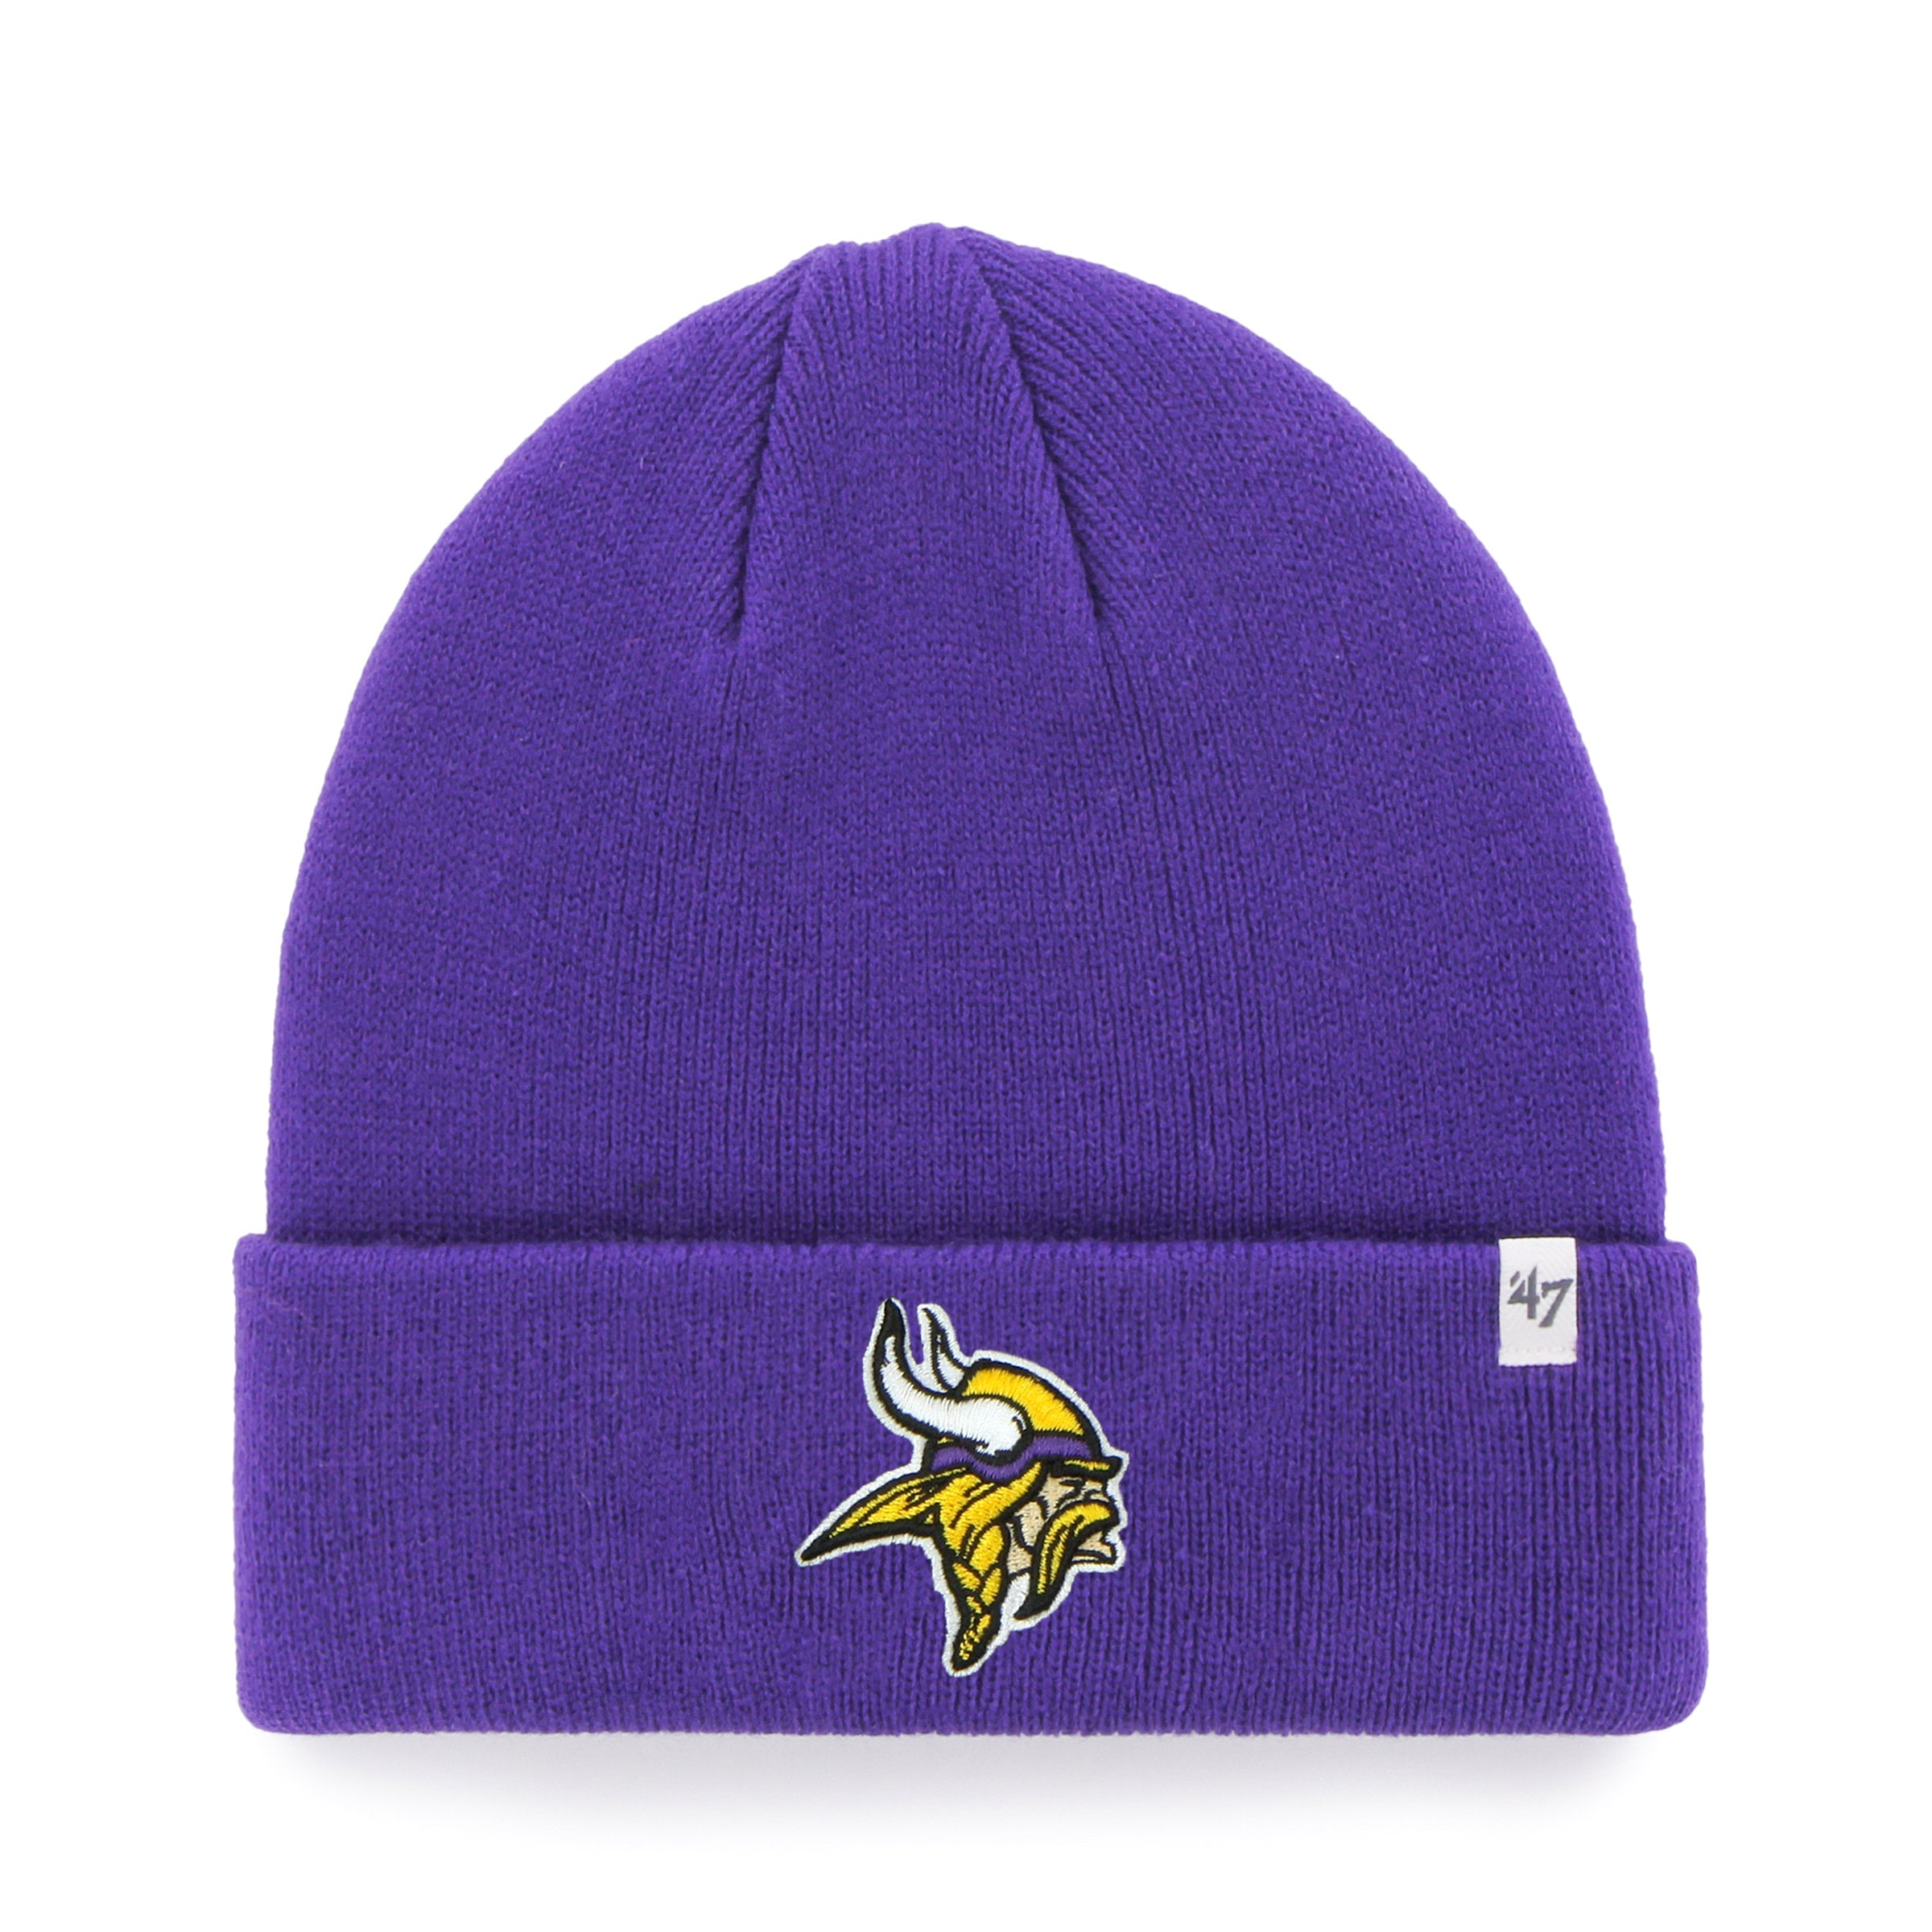 2171ee1f Minnesota Vikings NFL Raised Cuffed Knit Beanie